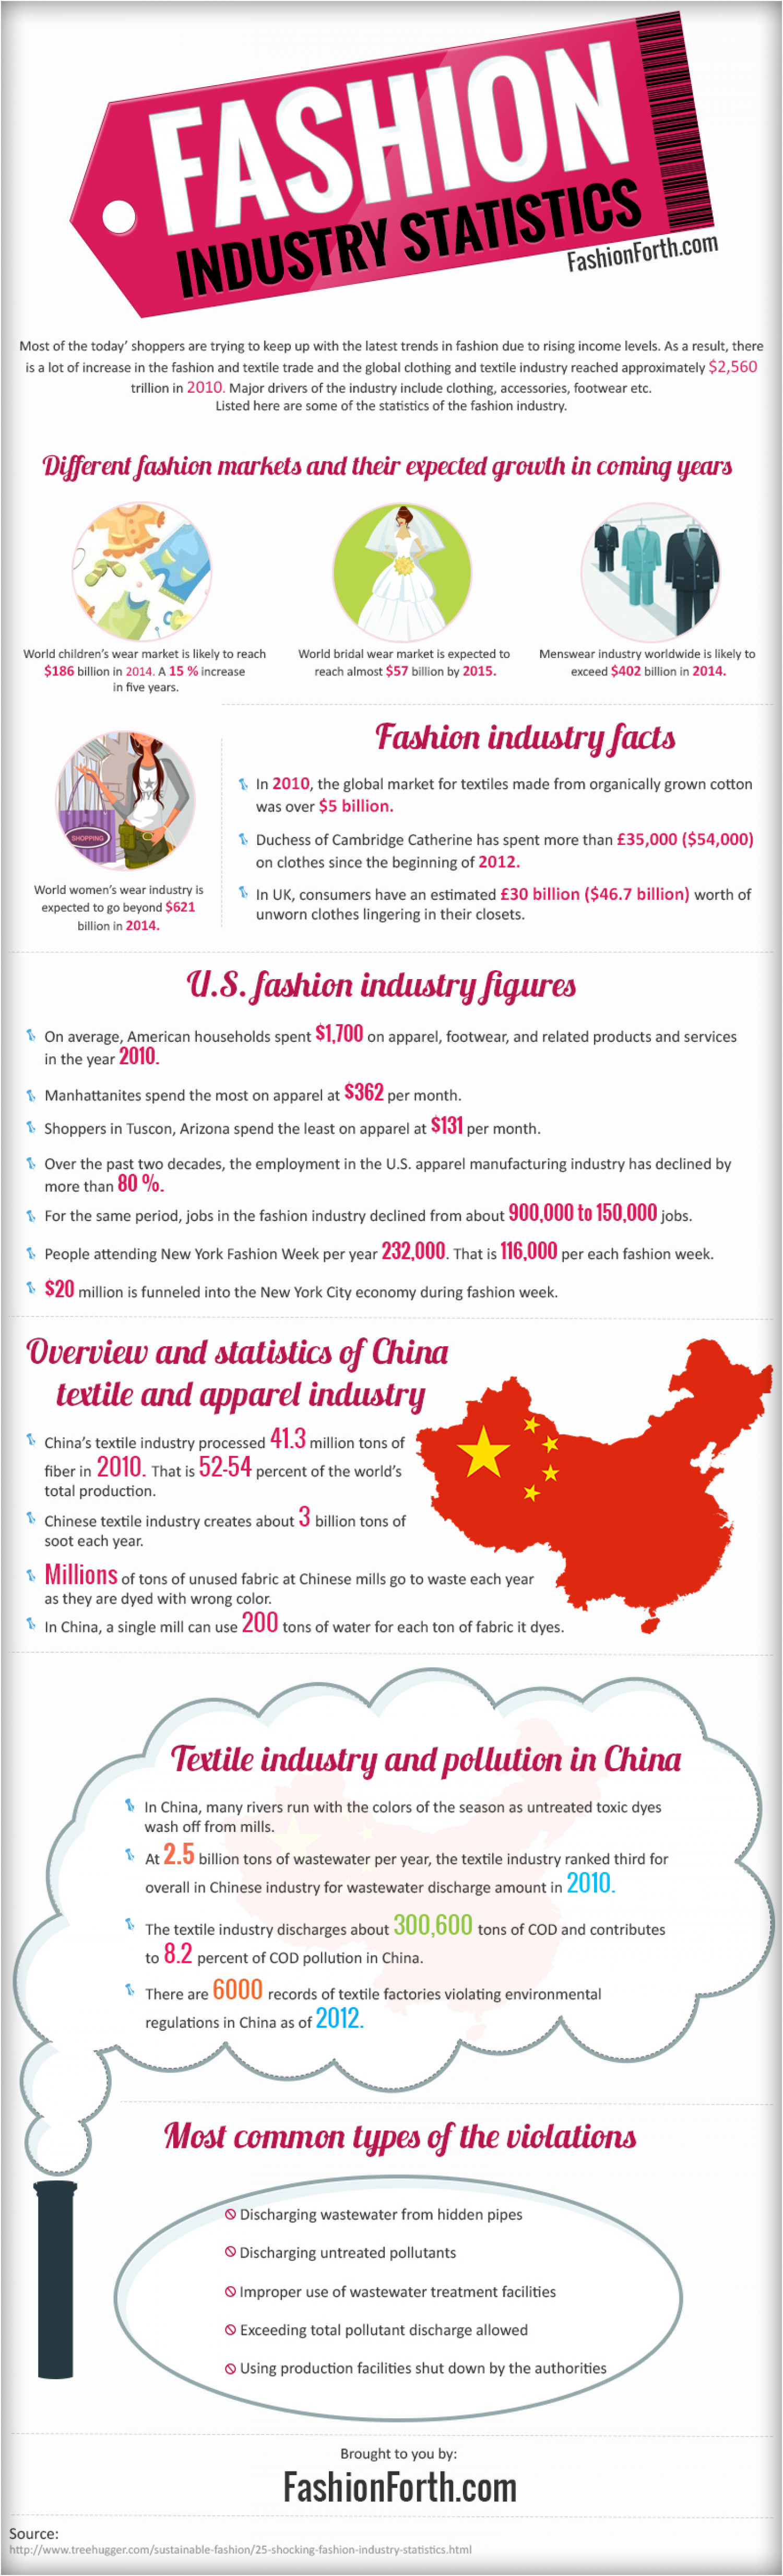 Fashion Industry Statistics Infographic